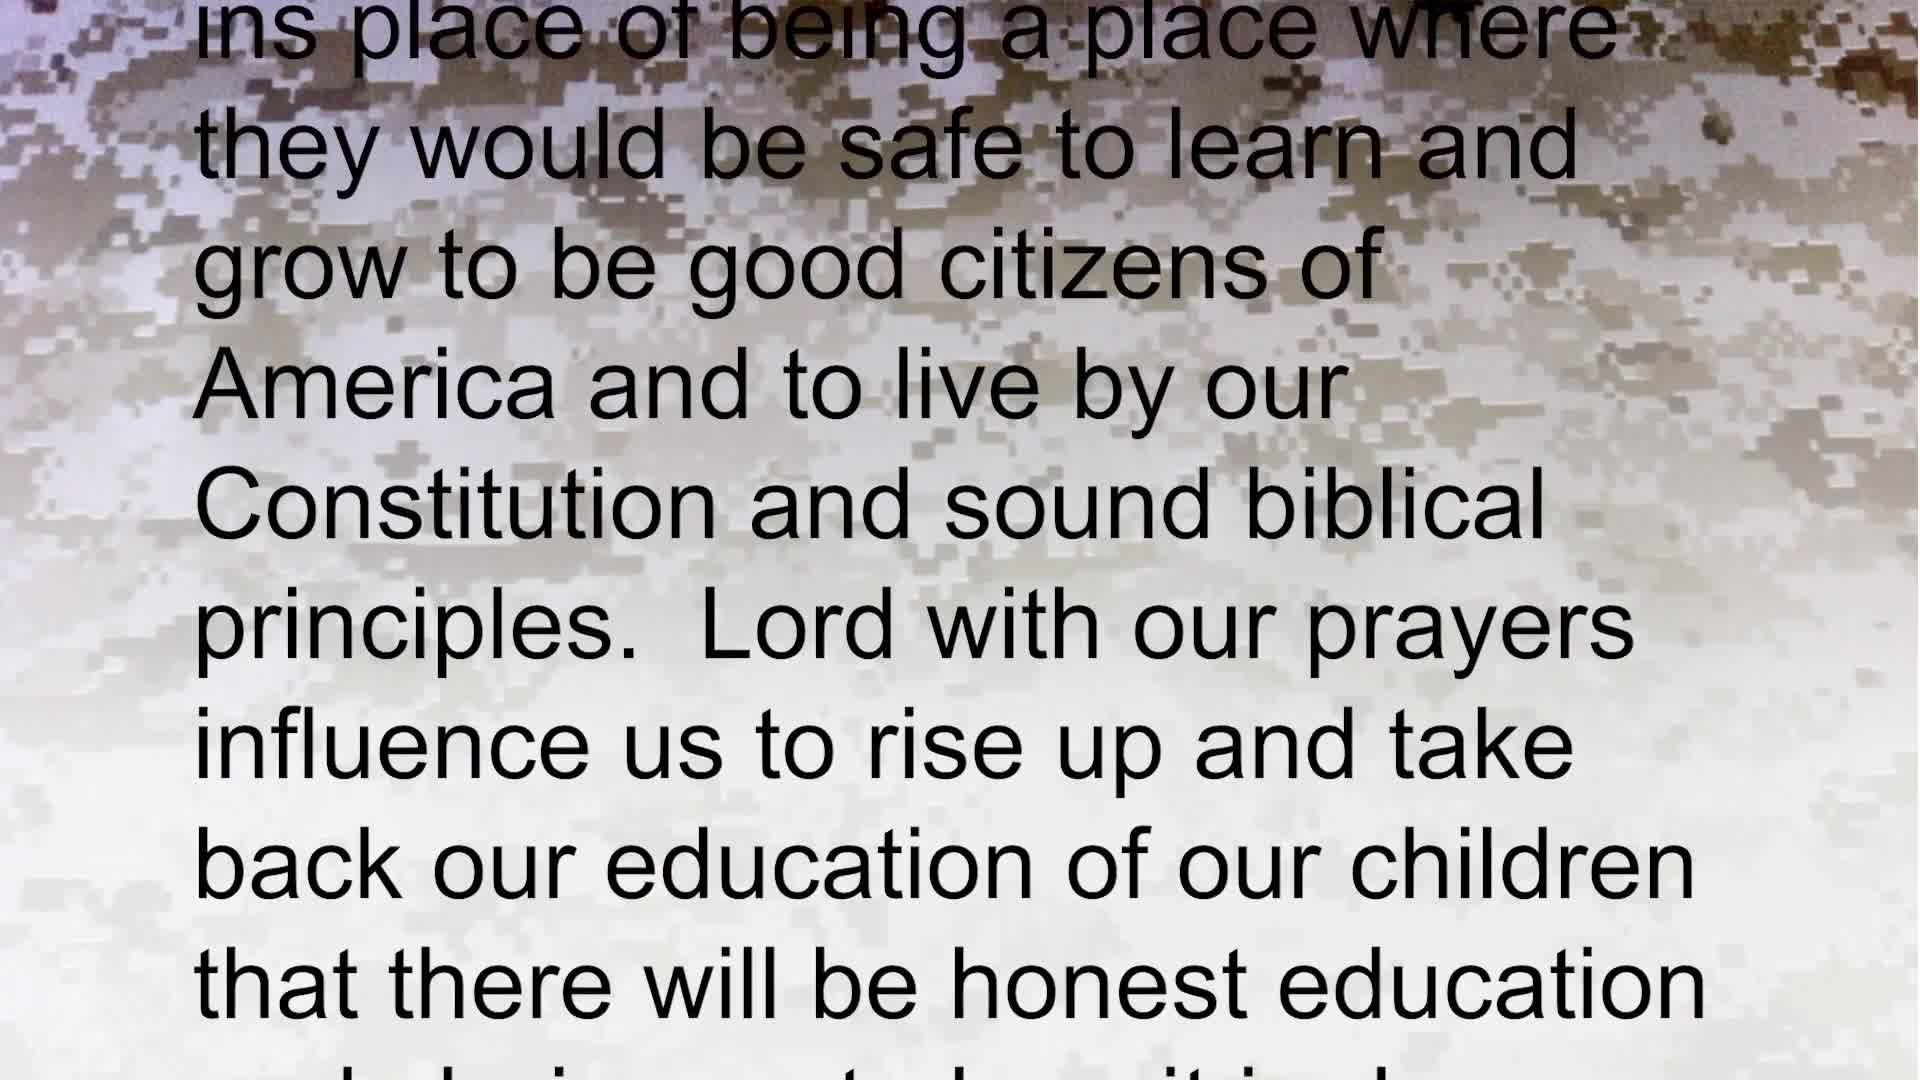 PRAYER FOCUS FIGHT FOR OUR CHILDREN TO TAUGHT OUR HERITAGE!